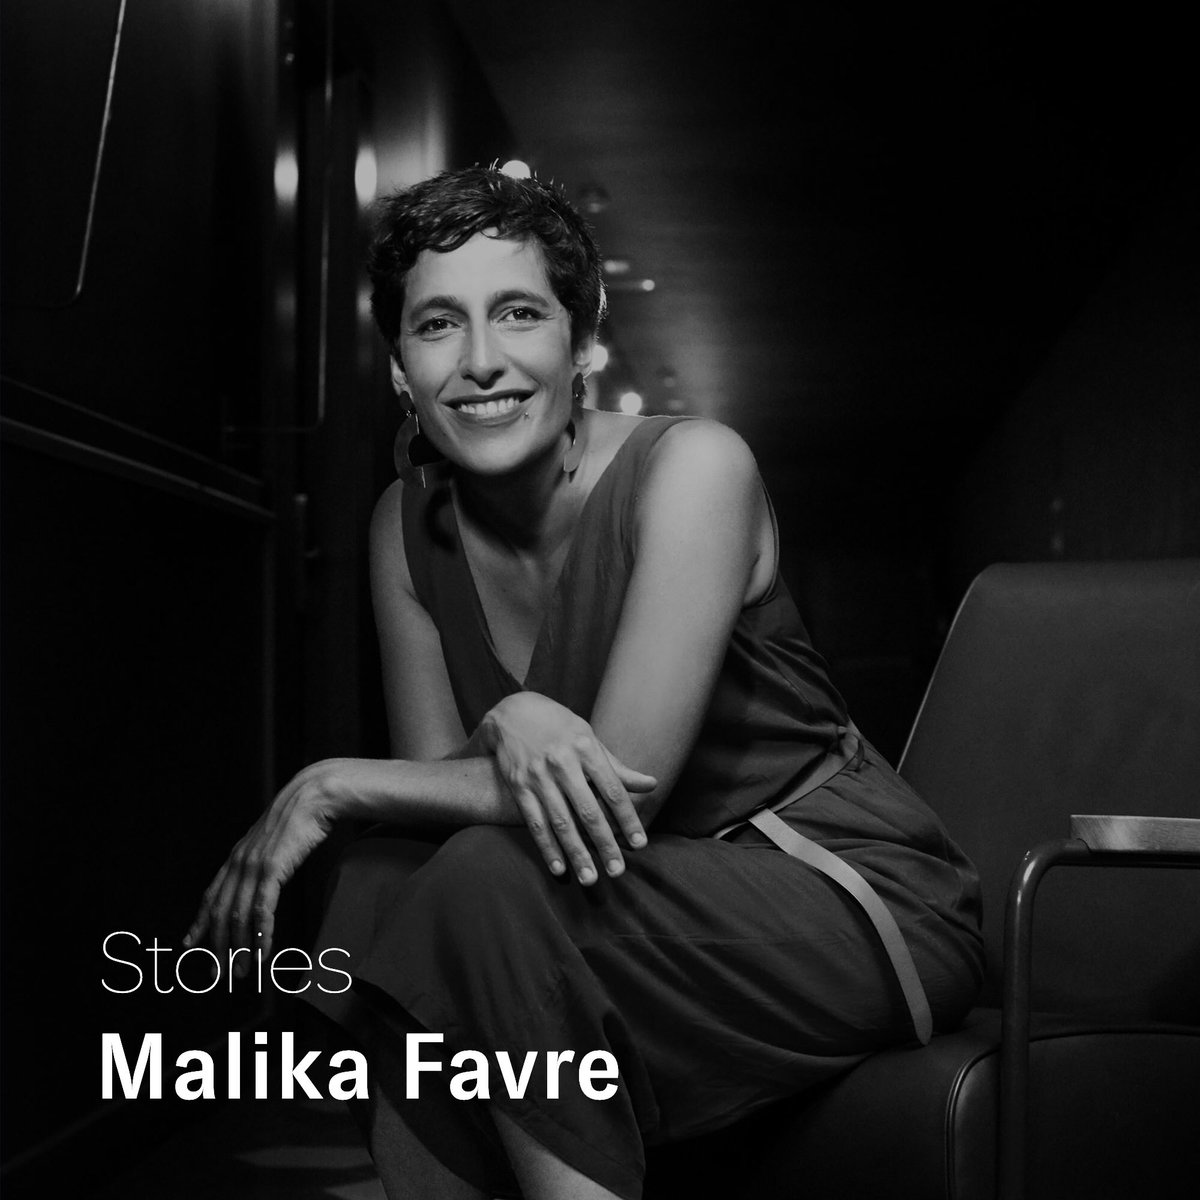 """Wouldnt it be nice to know a little bit more about the people behind the pictures we love so much? Three short questions to our amazing illustrators. Our first guest is @malikafavre. Go to section """"Stories"""" to get inspired by her - 21wallpaper.design/stories/"""